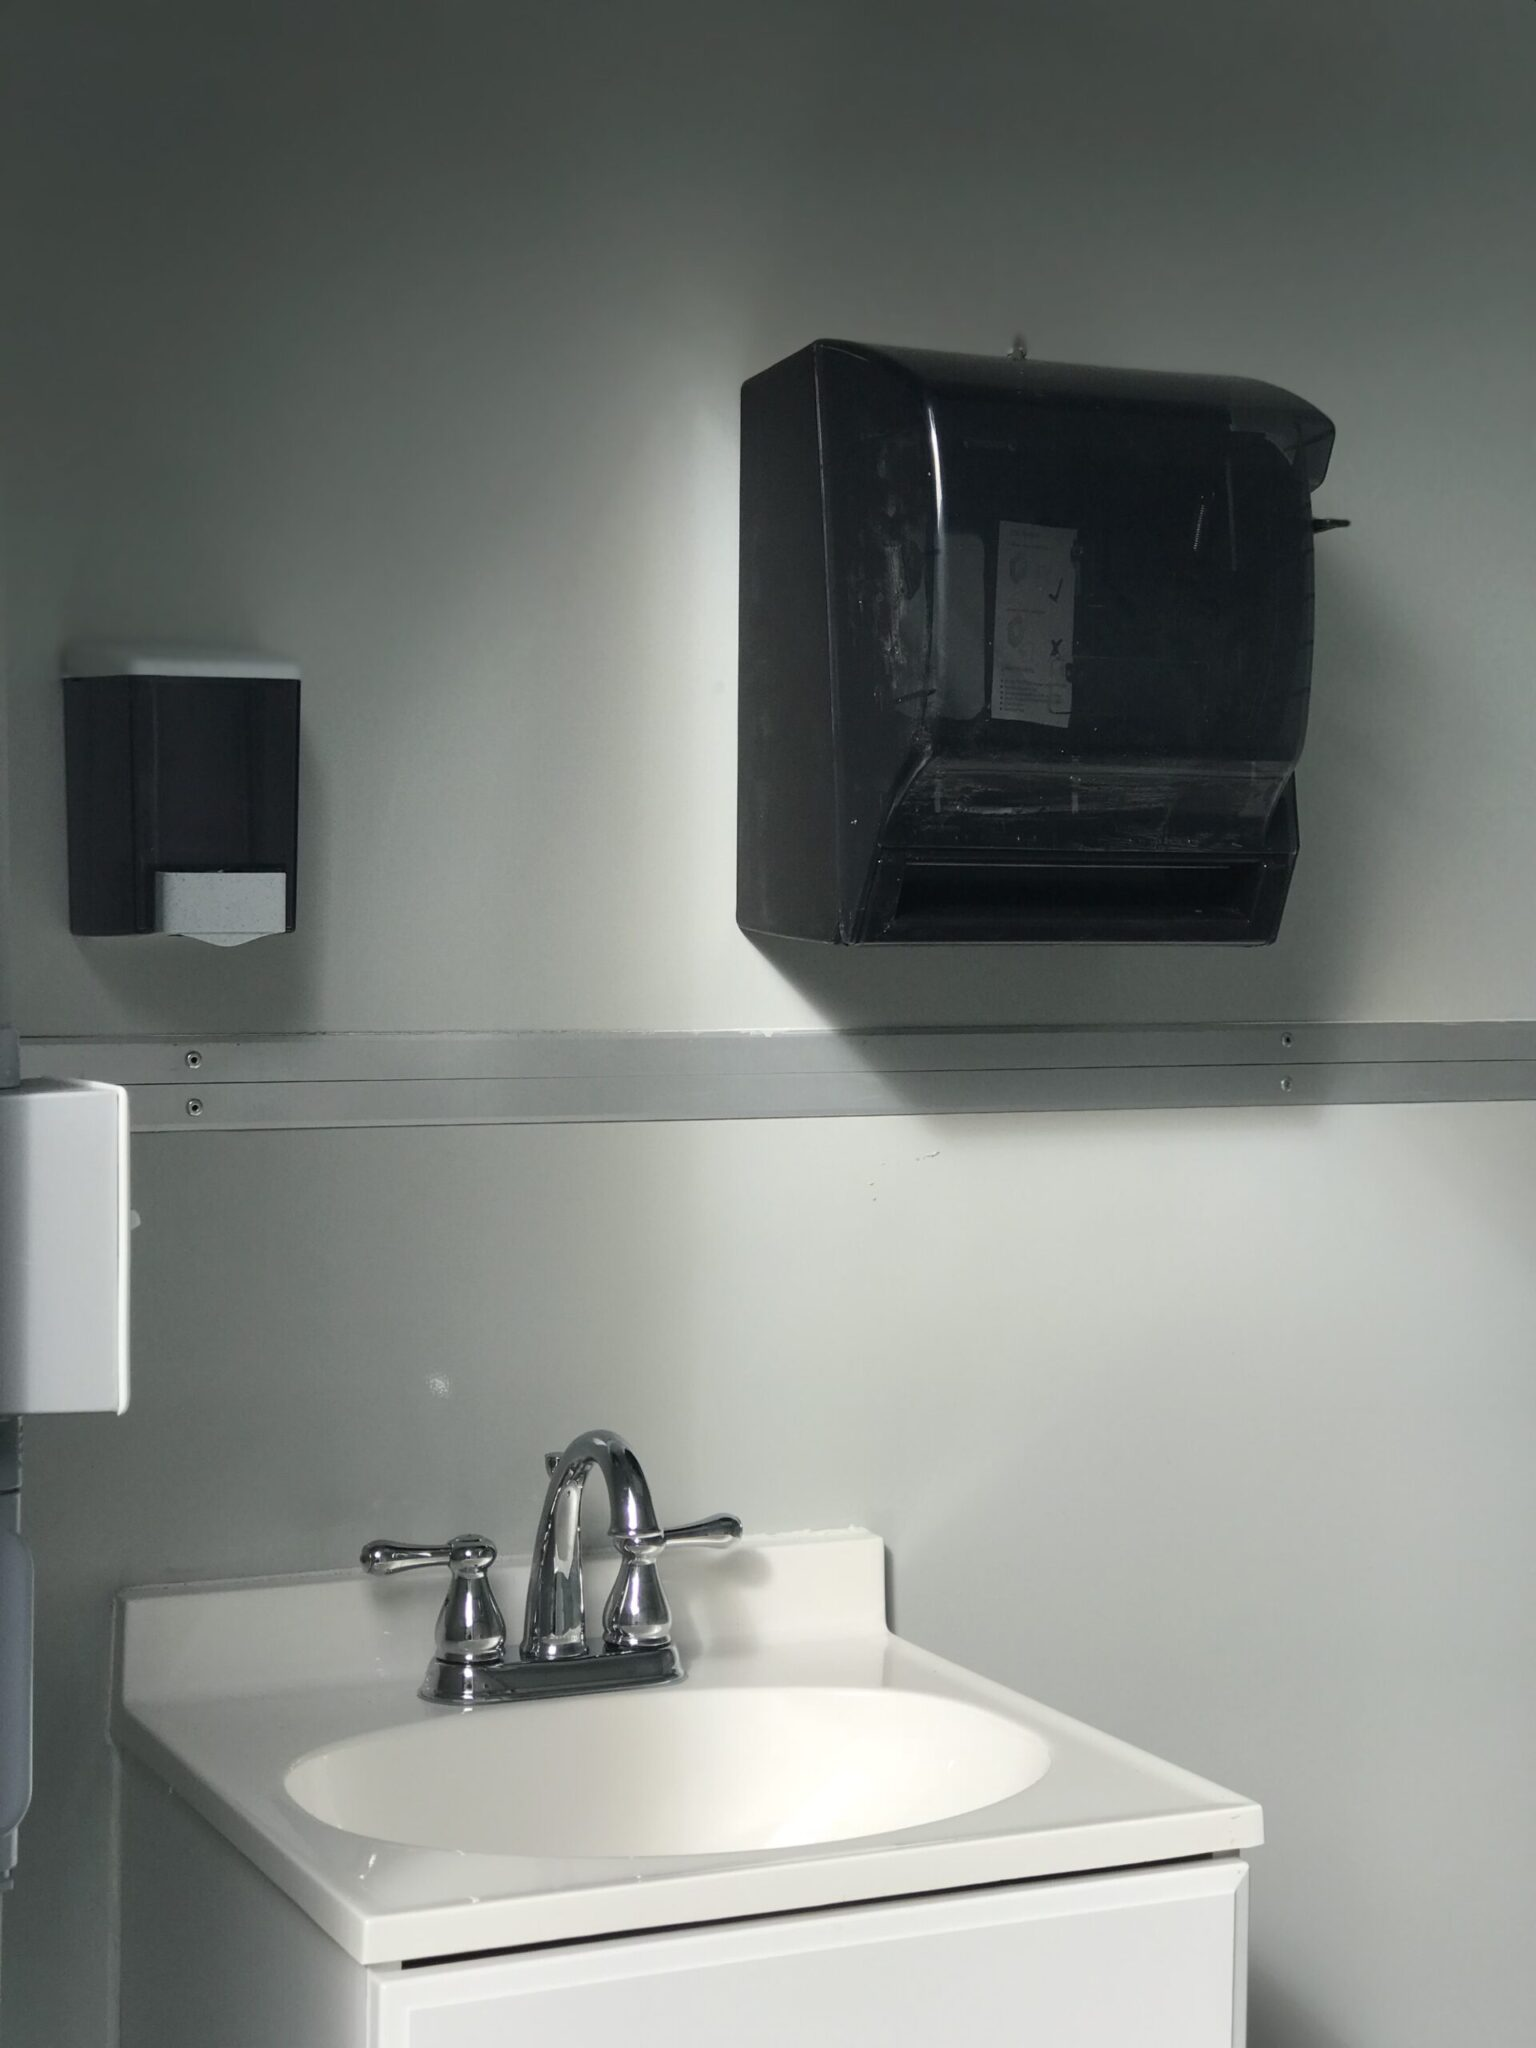 Sink and Soap and Paper Towel Dispenser, 6x8 Airport Security Booth in Carolina, PR 1